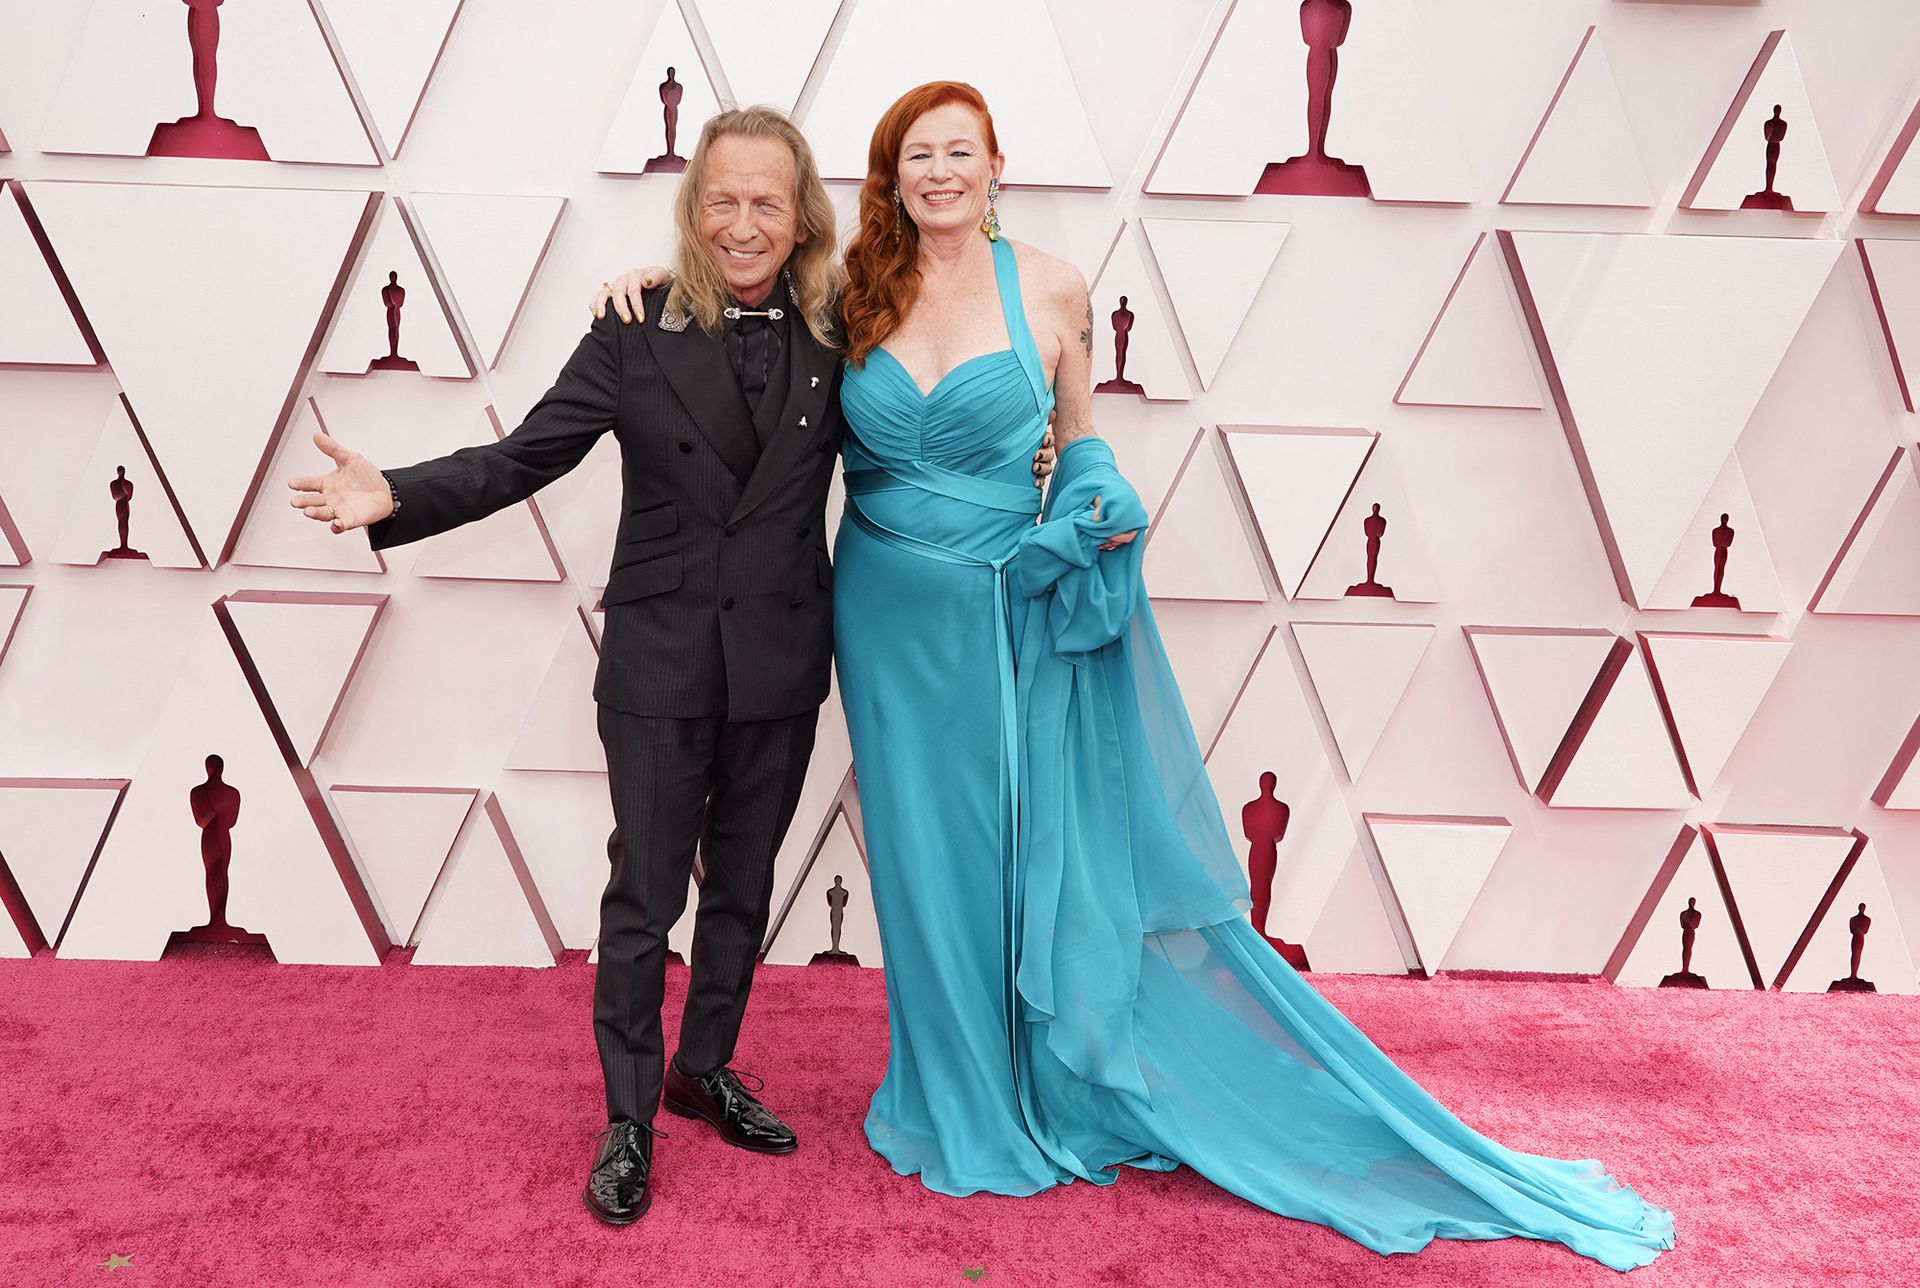 """Paul Raci, who was nominated for best supporting actor for his role in The Sound of Metal, arrived on the red carpet at the Oscars with his wife, Liz Hanley Raci; """"it was a surreal experience"""", he told LA NACION"""